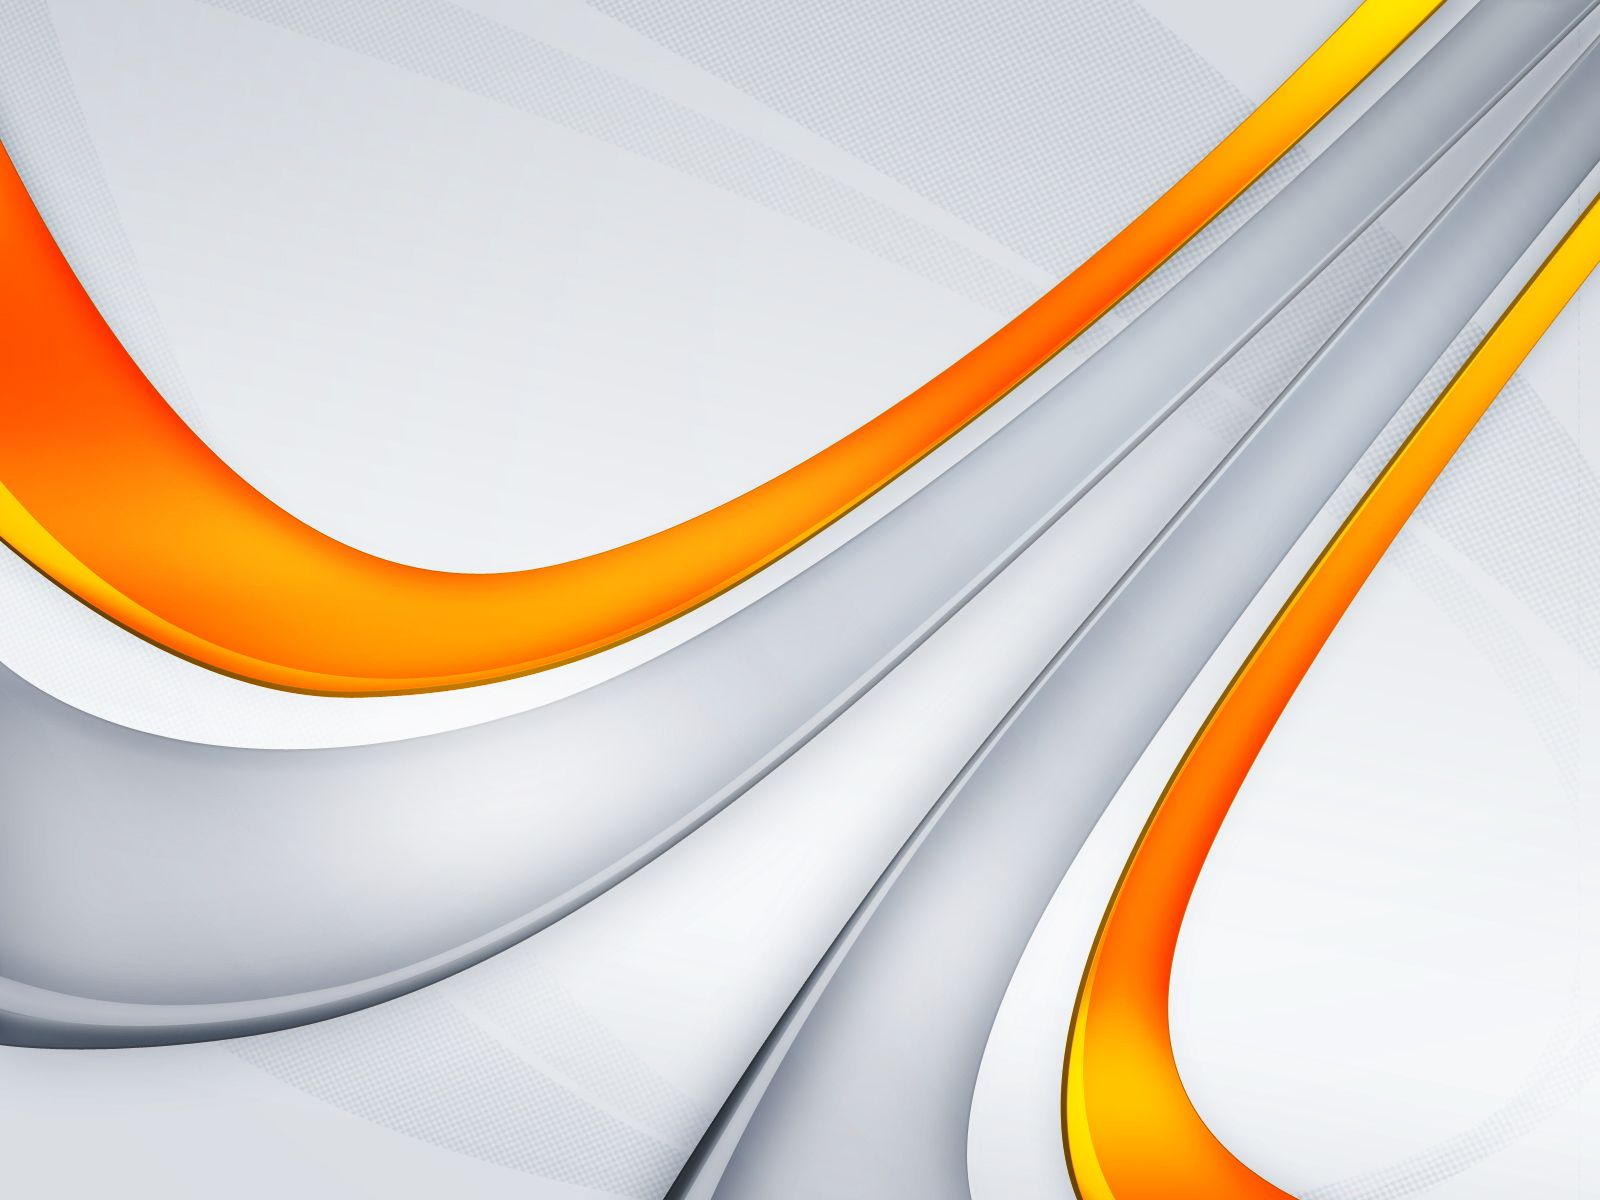 Amazing White Background With The Addition Of A Curved Line Orange